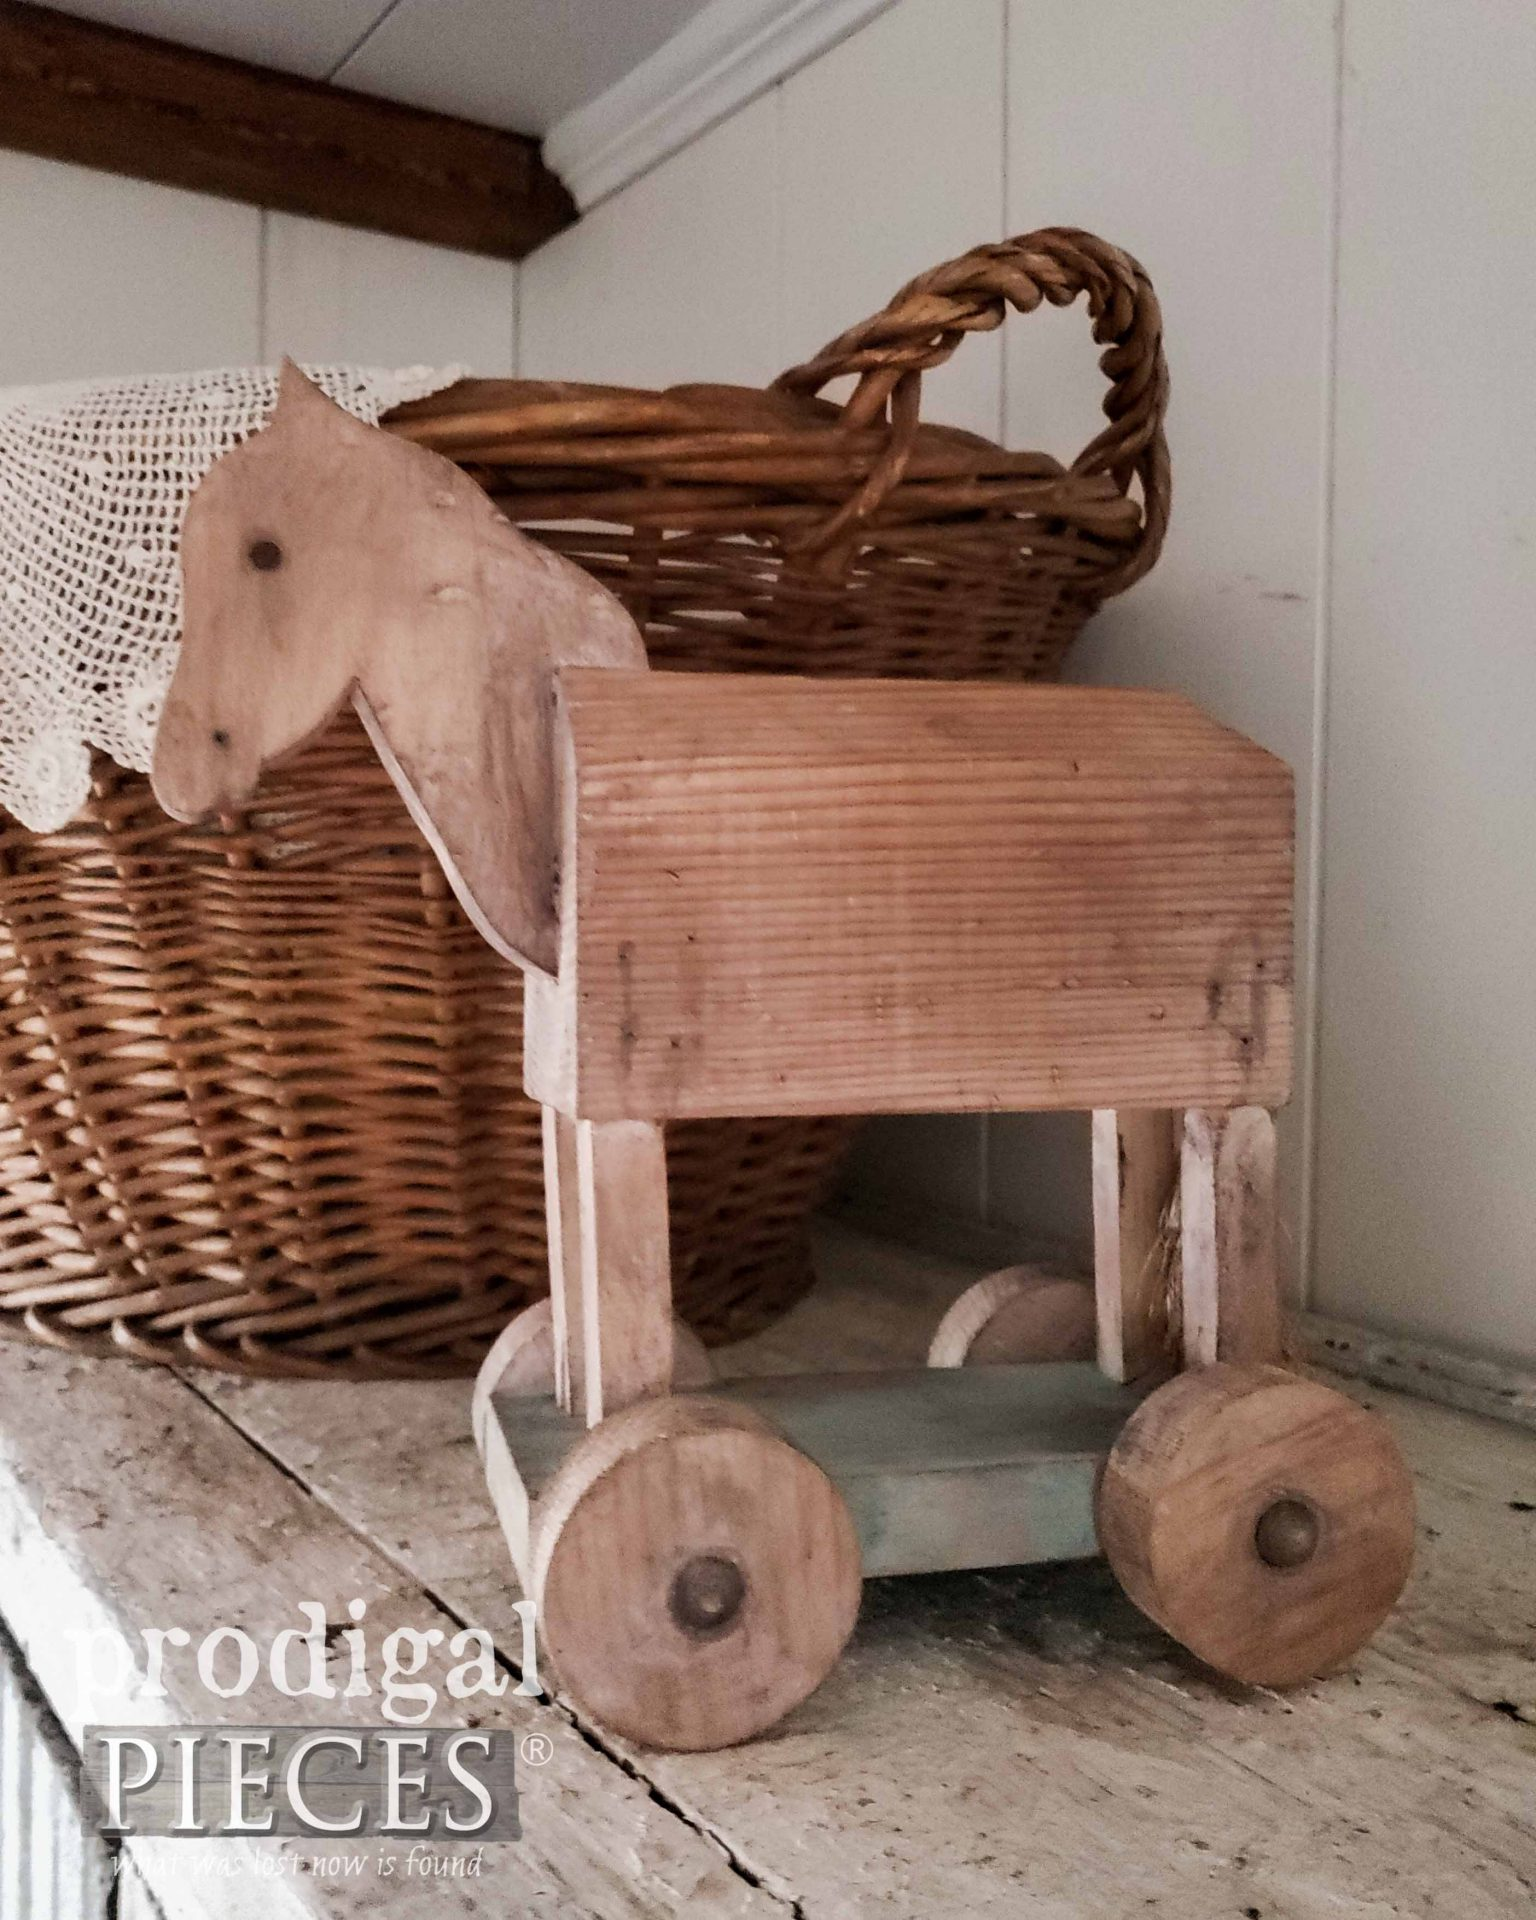 Small Wooden Hobby Horse by Prodigal Pieces | prodigalpieces.com #prodigalpieces #diy #home #homedecor #farmhouse